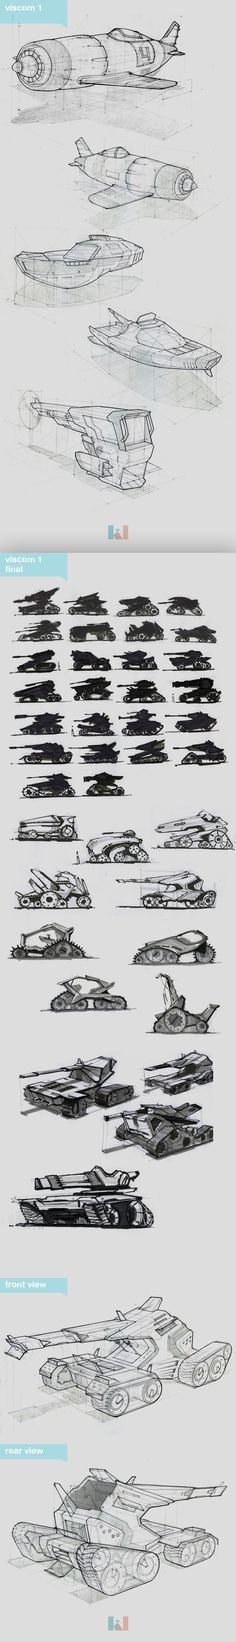 Autombile Sketches - Visual communications by Kidong Kwon, via Behance